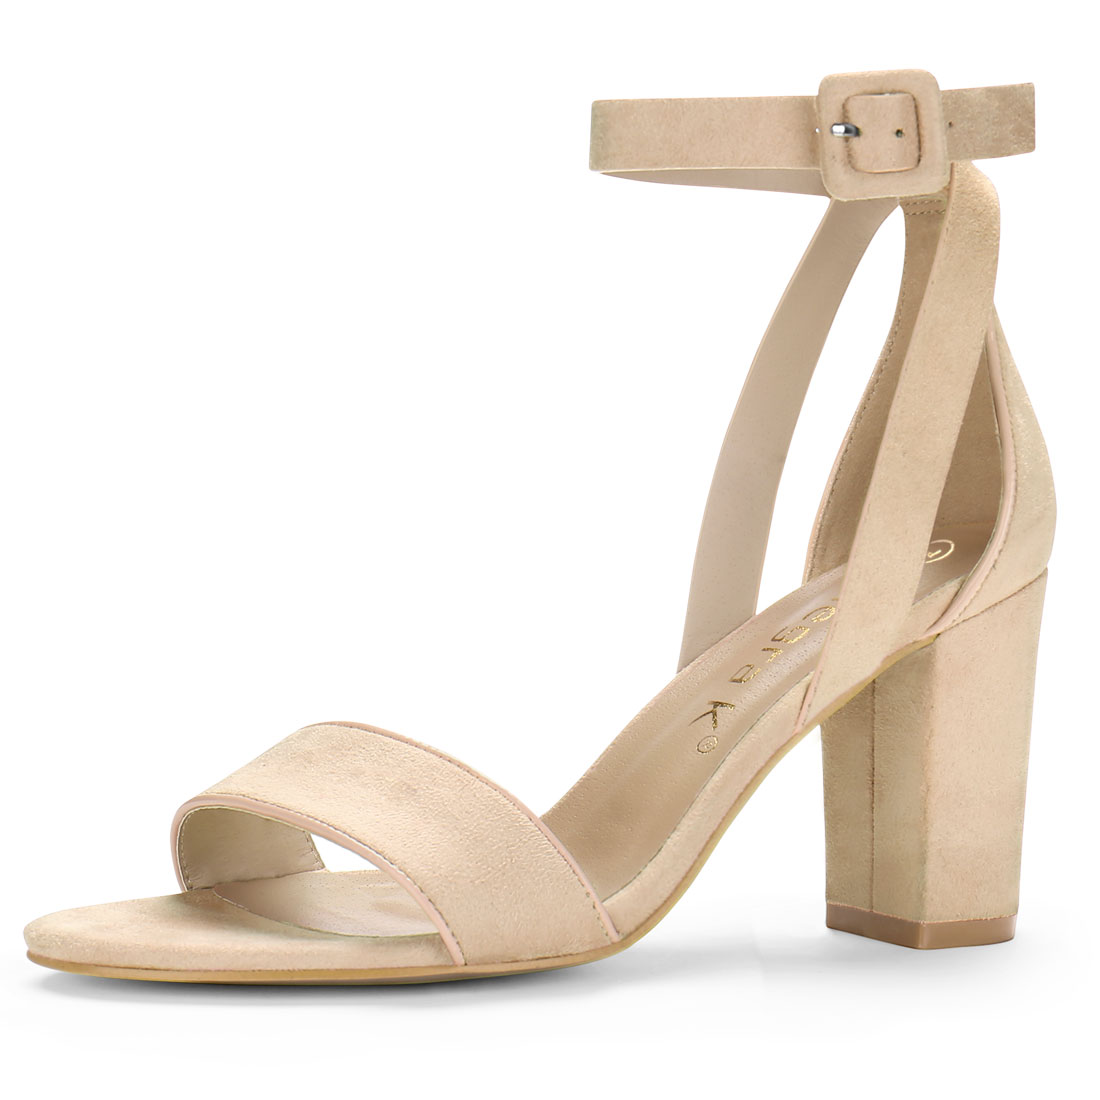 Women PU Panel Piped Chunky Heel Ankle Strap Sandals Beige US 7.5